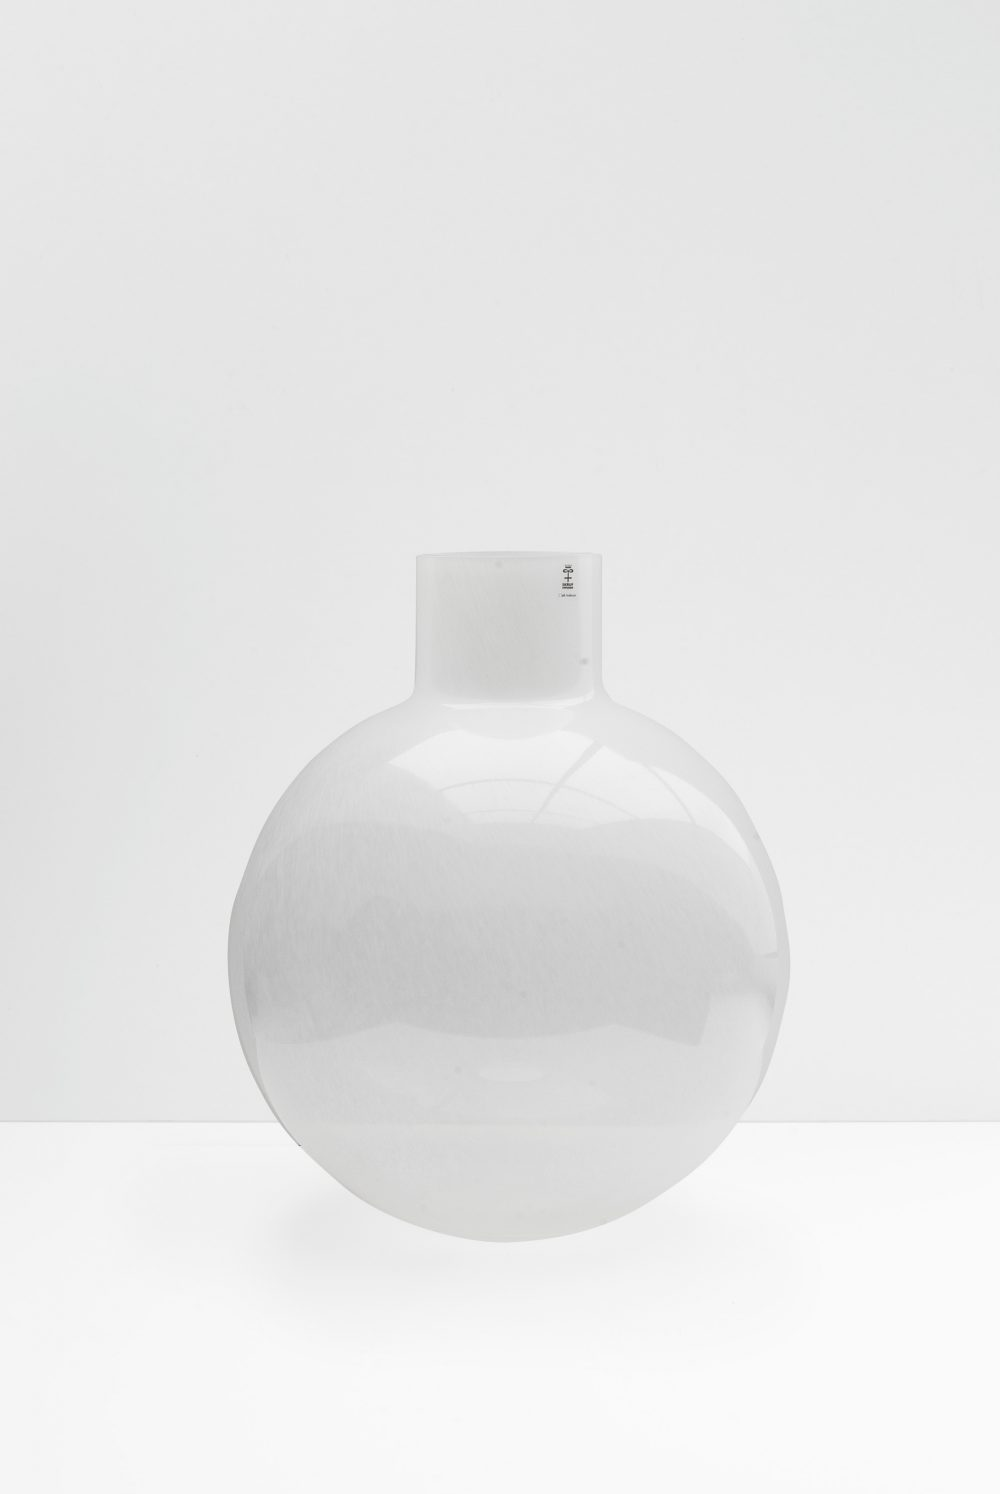 Pallo vase in shiny white